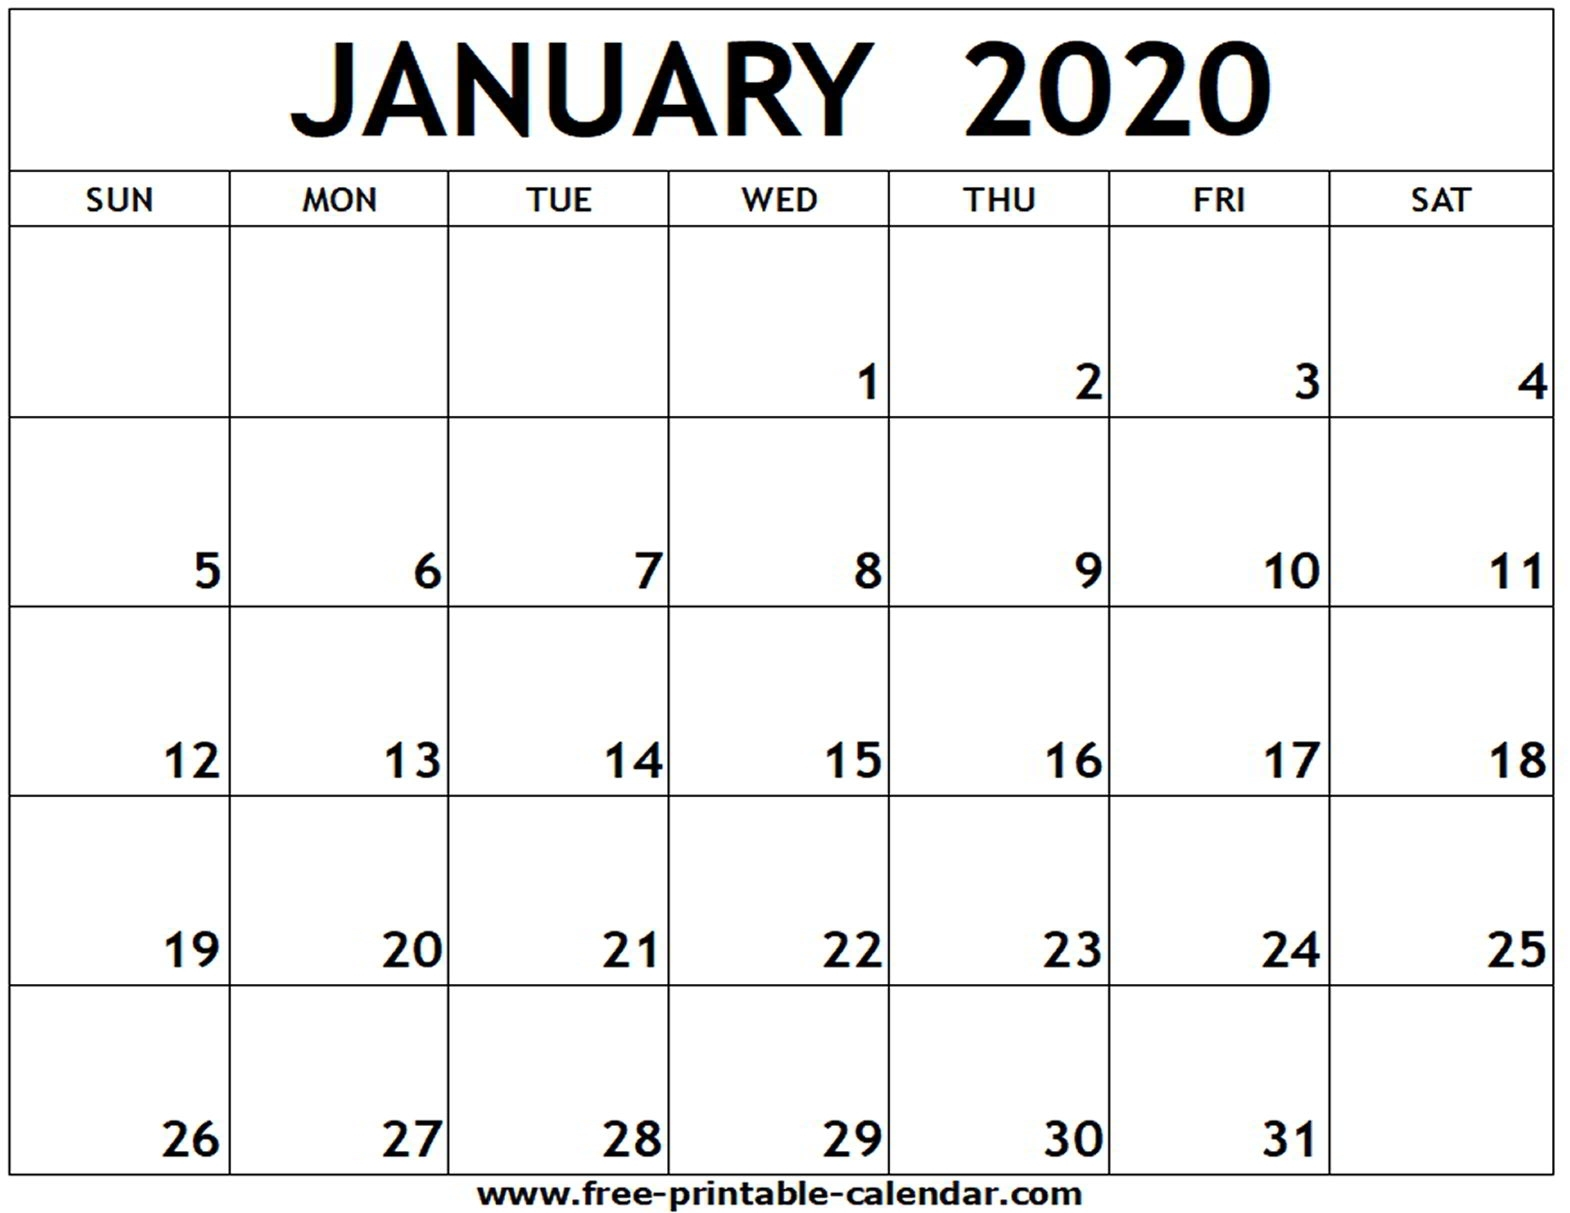 January 2020 Printable Calendar - Free-Printable-Calendar in Print Free Calendars 2020Without Downloading